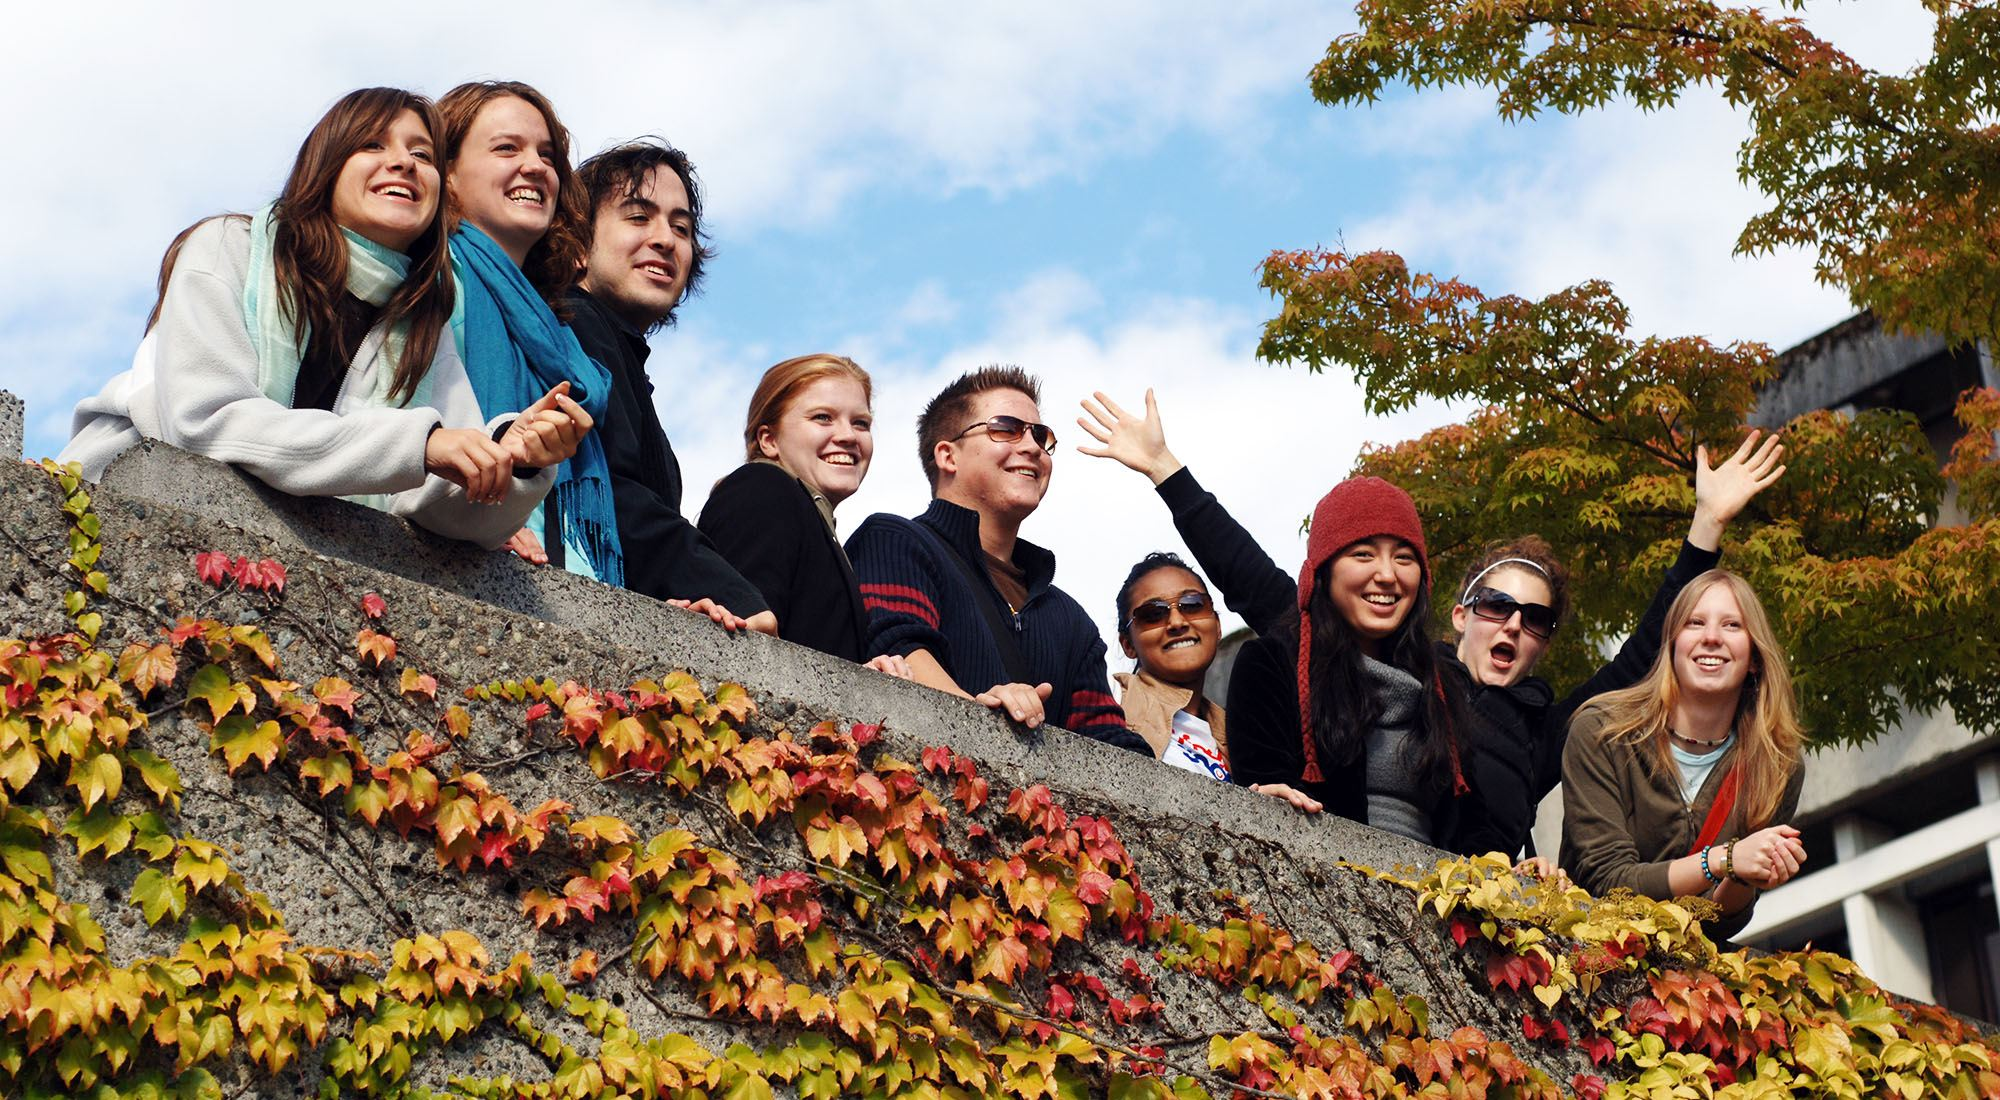 Where to enjoy outdoor activities at SFU